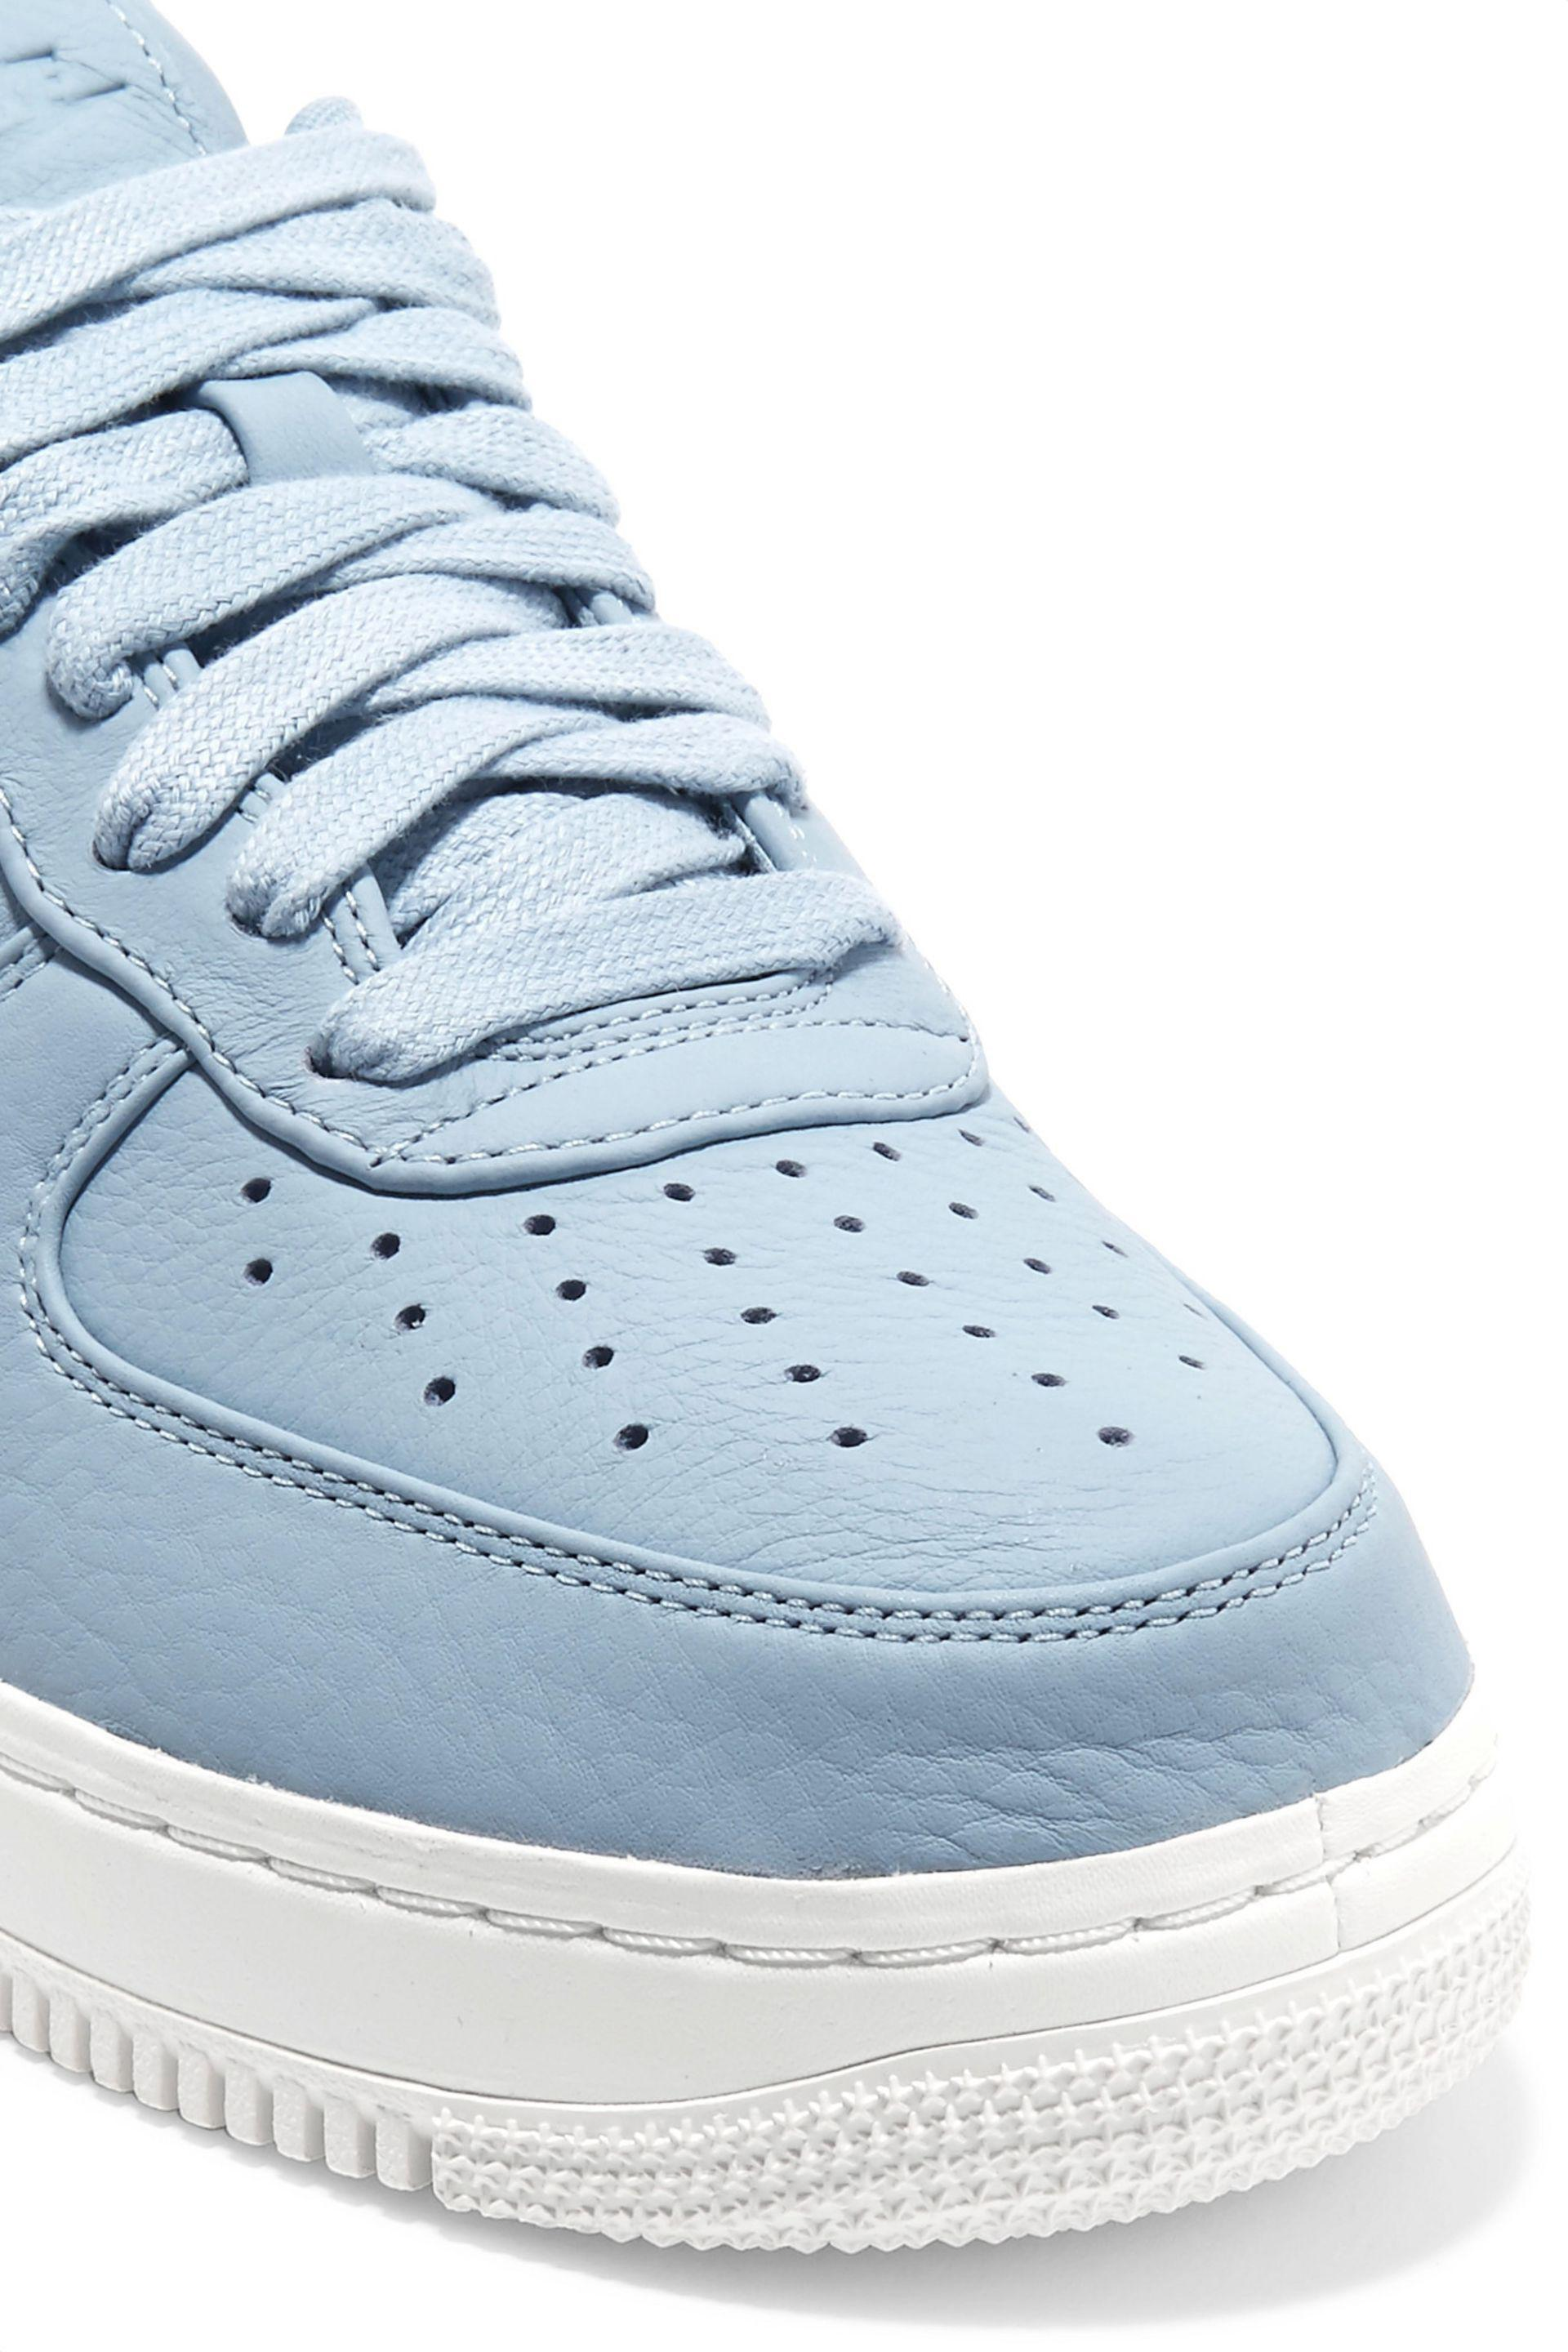 Nike Blue Air Force 1 Perforated Leather Sneakers